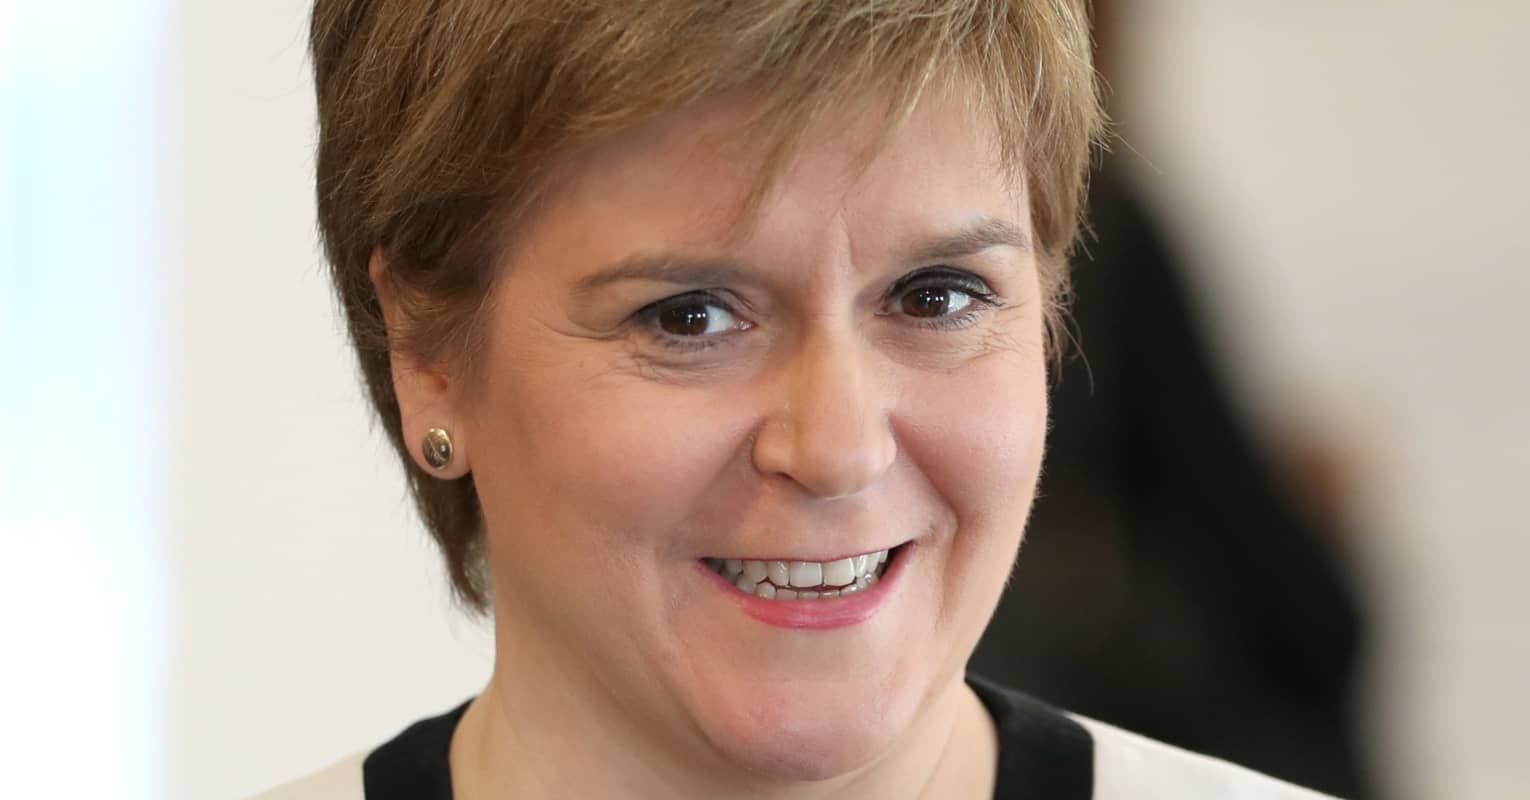 Scotland's First Minister says Trump can't go there after Biden's inauguration